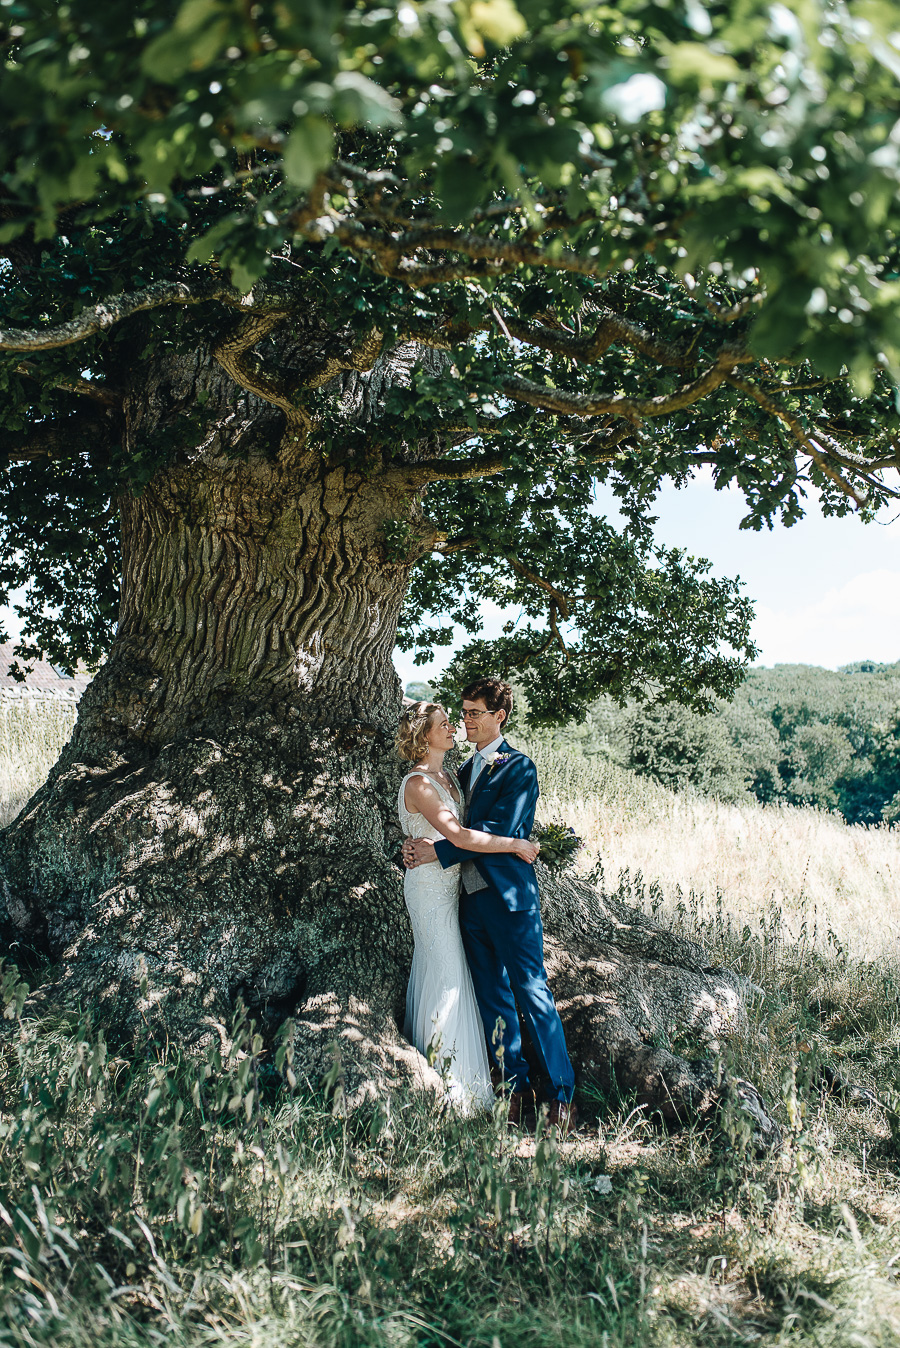 Wedding Photography - Folly Farm Centre Bristol - Our Beautiful Adventure Photography - The Couple's Portraits